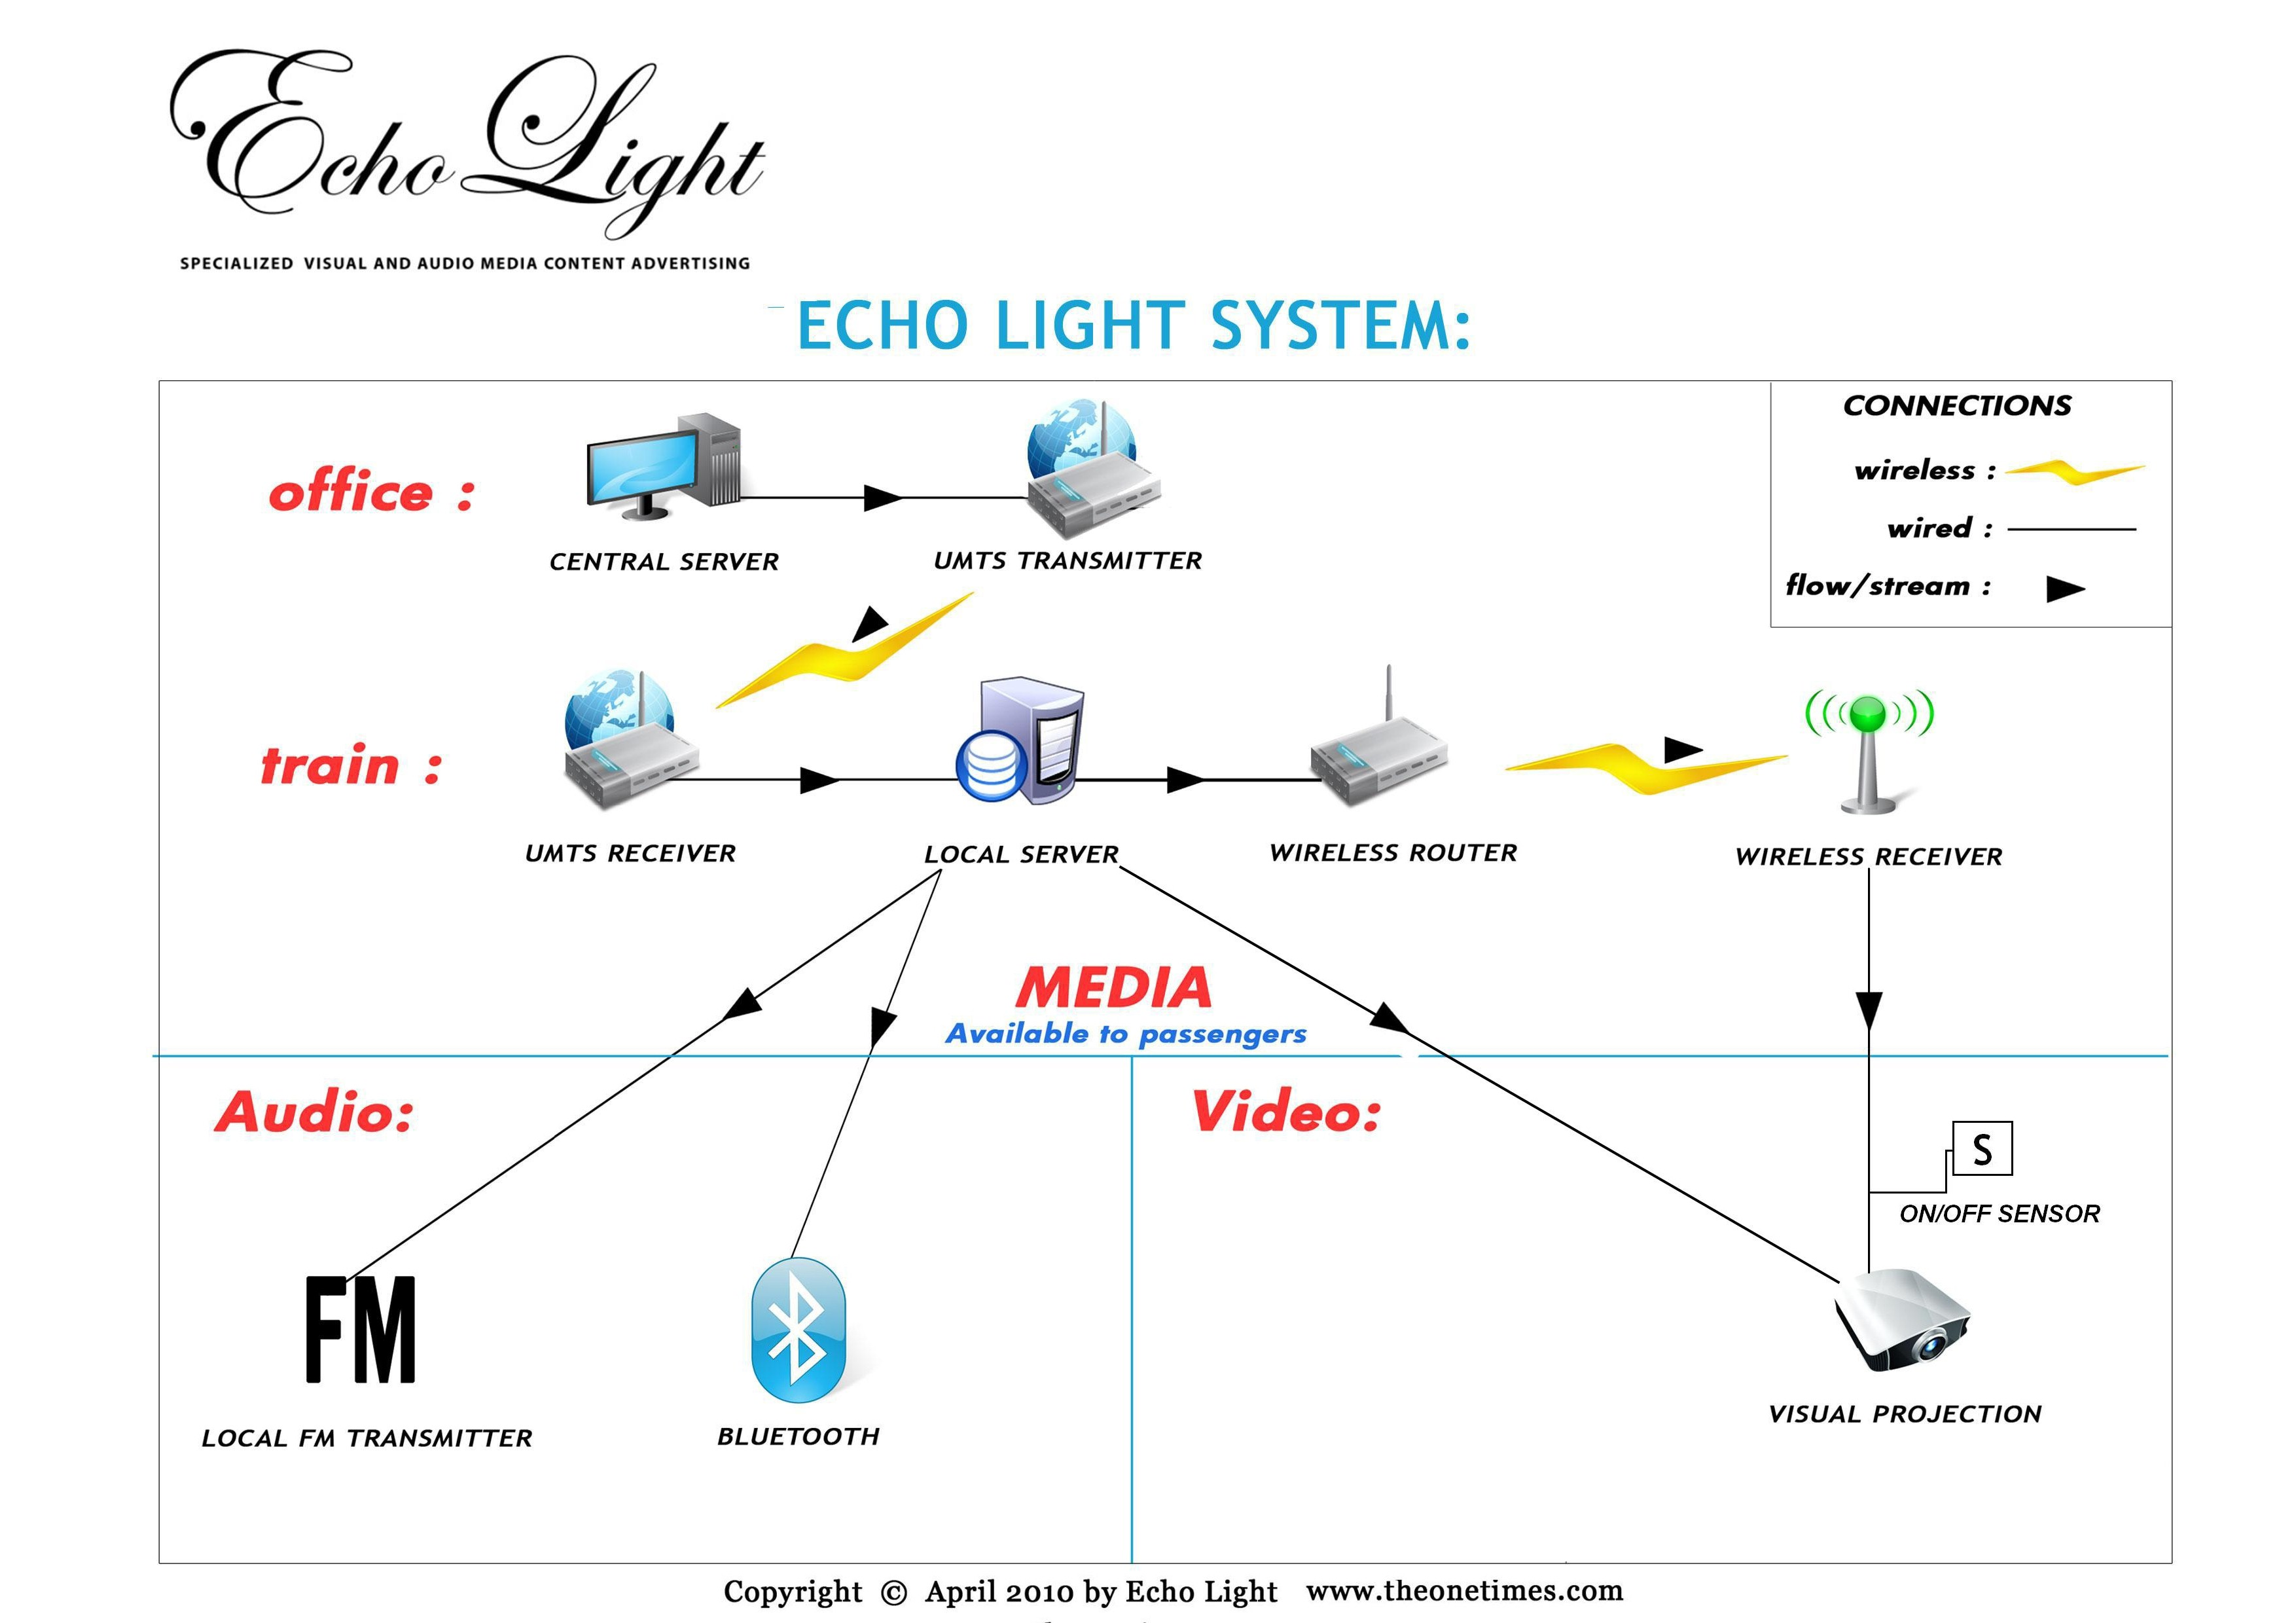 Charts In Powerpoint 2010: ECHO LIGHT SYSTEM COMMUNICATION CHART SIMPLIFIED.jpg ,Chart